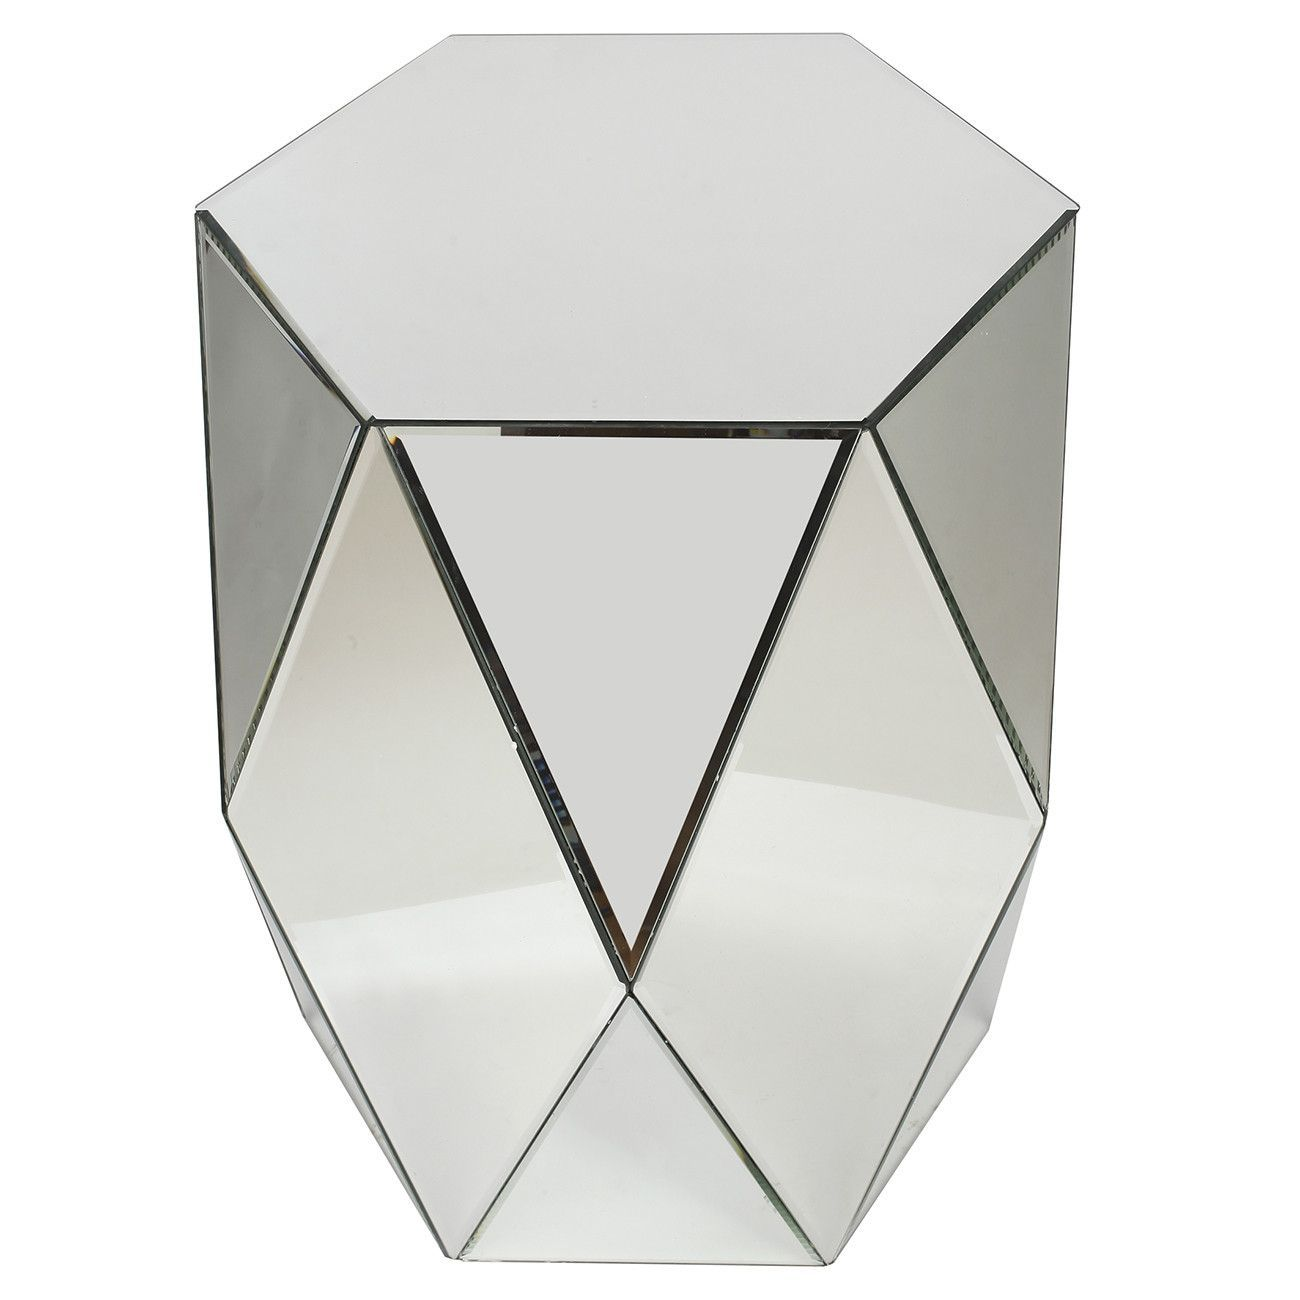 home geometric mirrored accent table products mirage christmas tablecloth inch round white console lamps bunnings garden furniture living room centerpiece ideas door cabinet